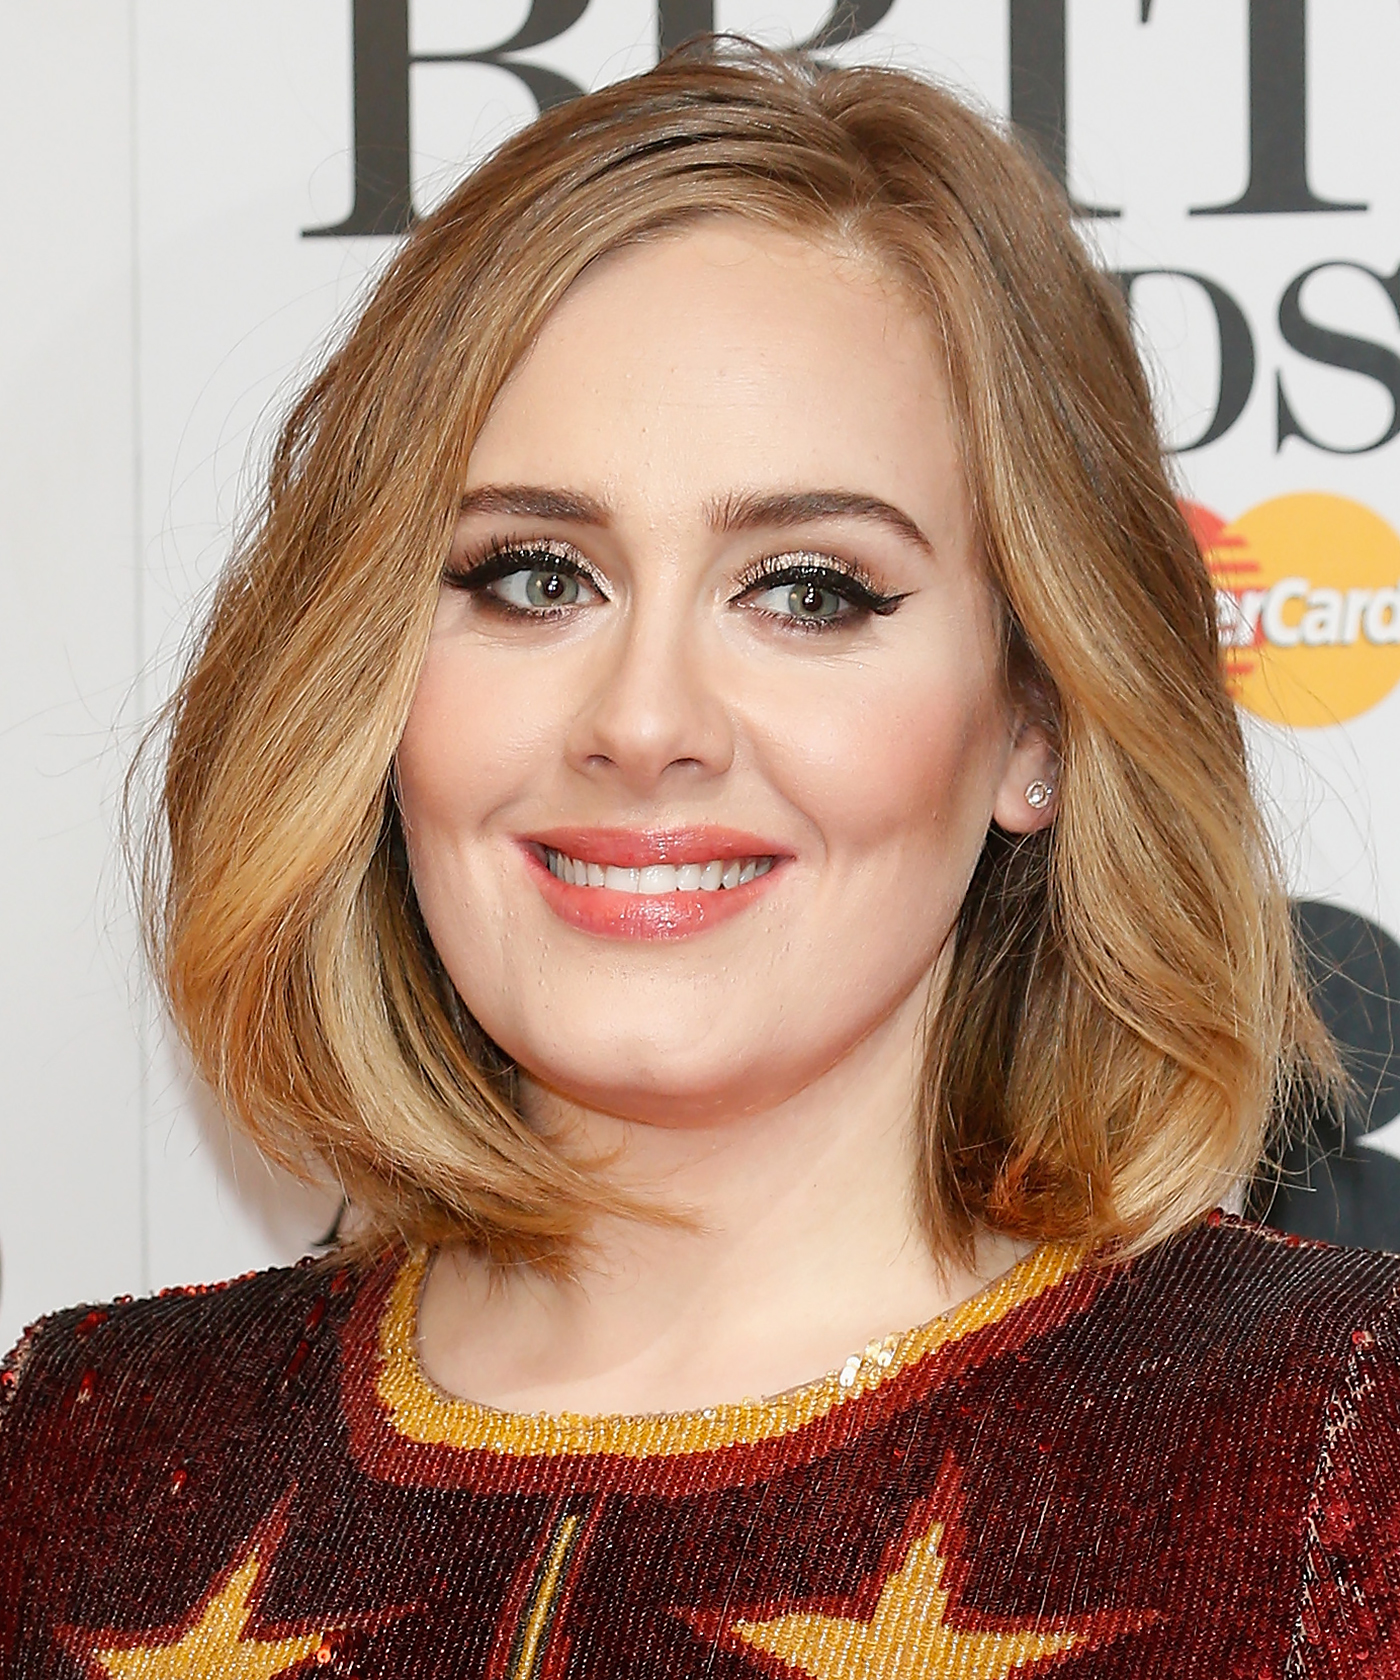 Adele Completely Slays Halloween with Incredible <em>The Mask</em> Costume